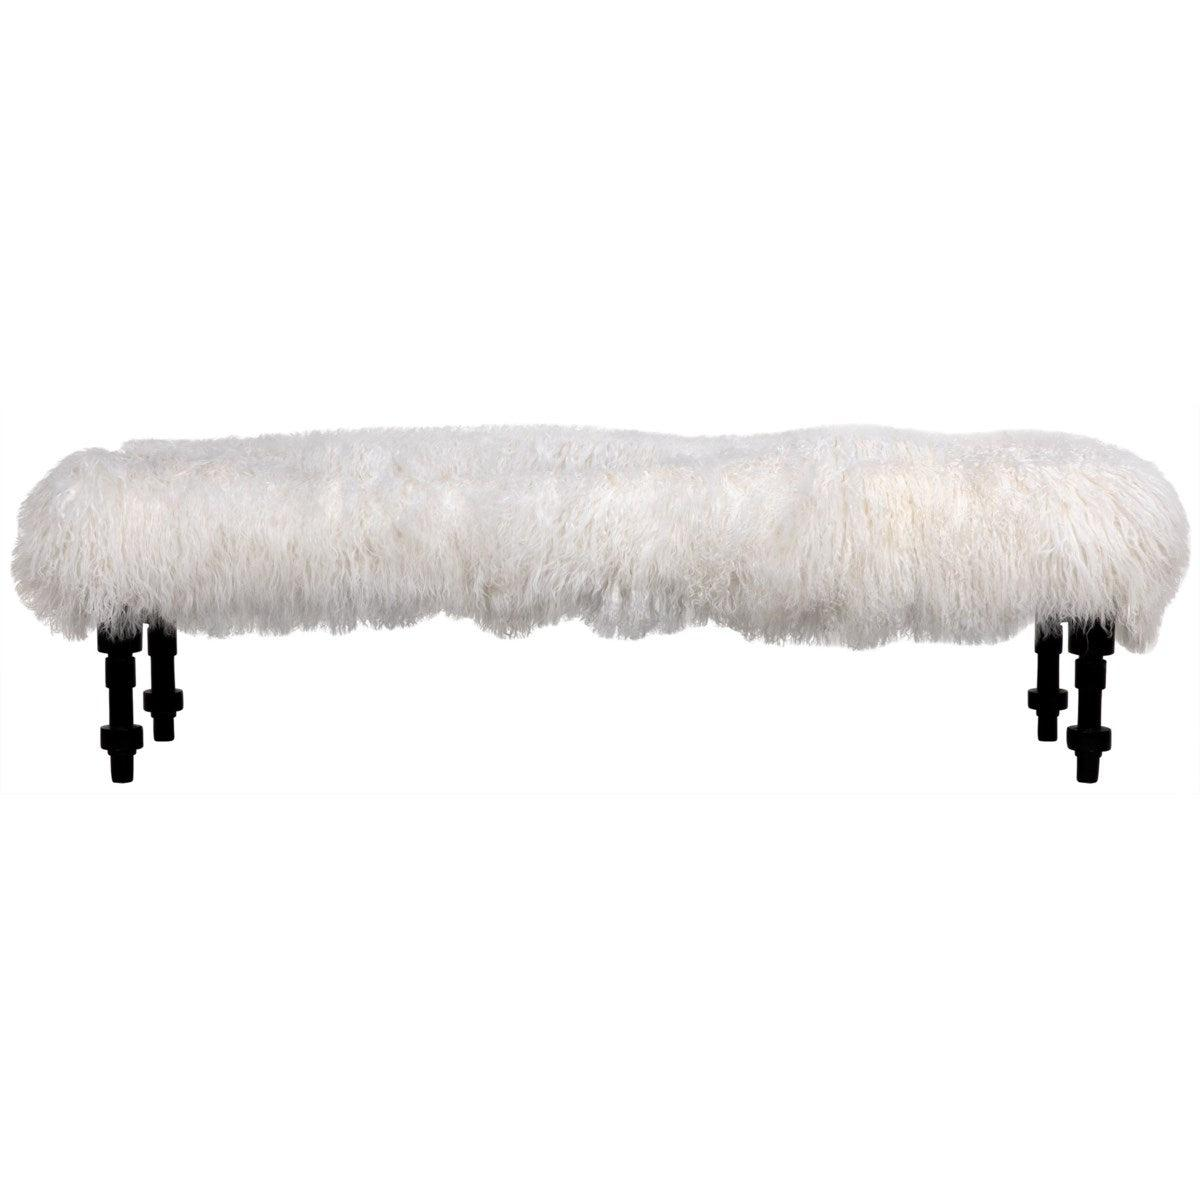 Noir Furniture Coco Bench with Lamb Fur, Hand Rubbed Black-Noir Furniture-Blue Hand Home